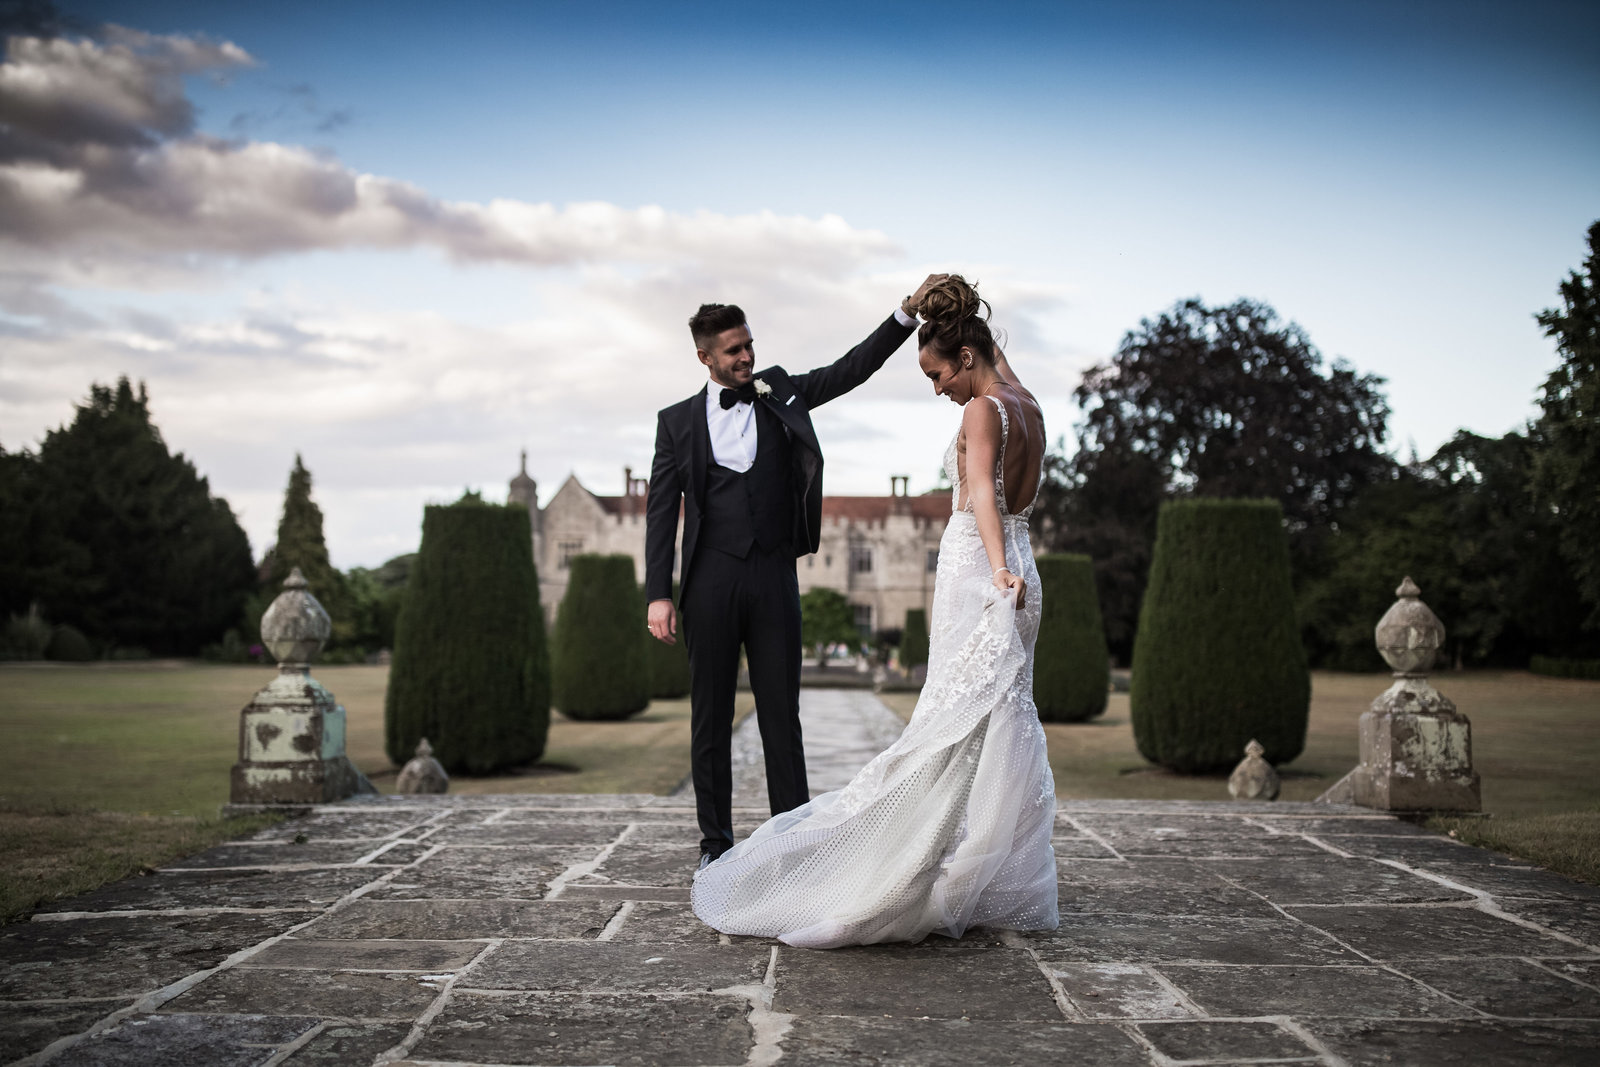 A groom stands on top of some steps and twirls his Bride. Hengrave hall is in the background.